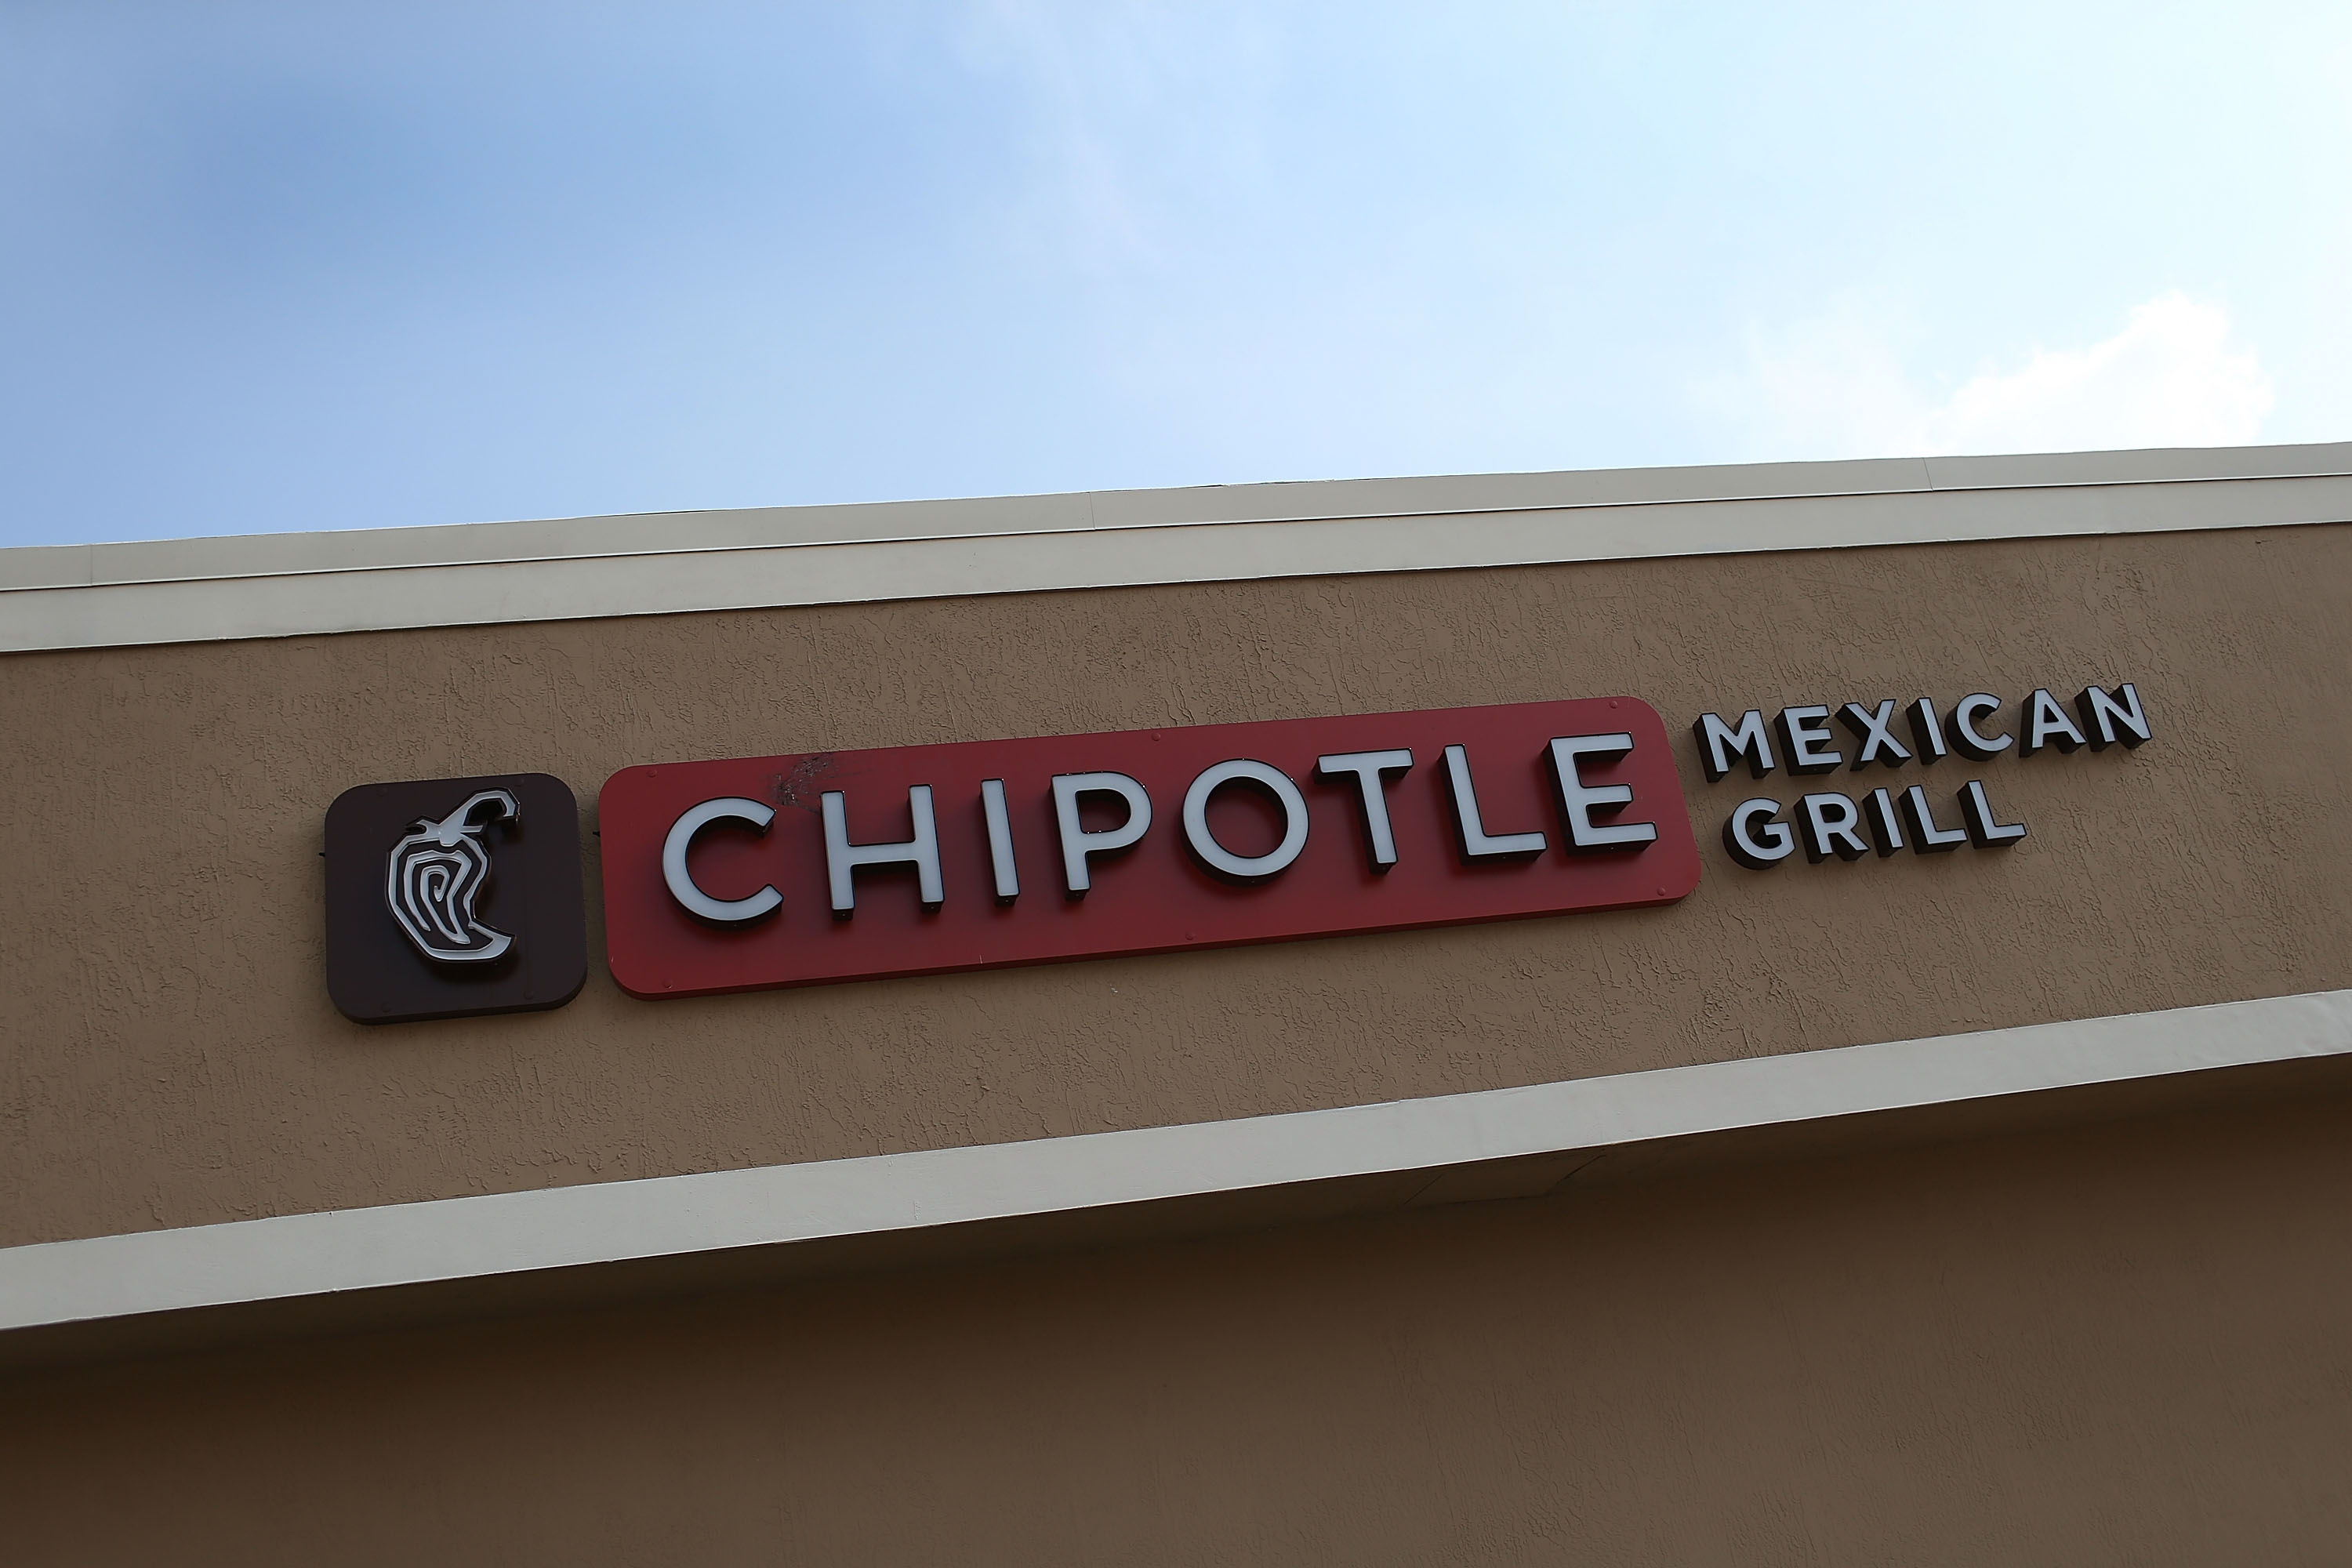 The sign is seen outside the Chipotle restaurant, on the day that the company announced it will only use non-GMO ingredients in its food on April 27, 2015 in Miami.